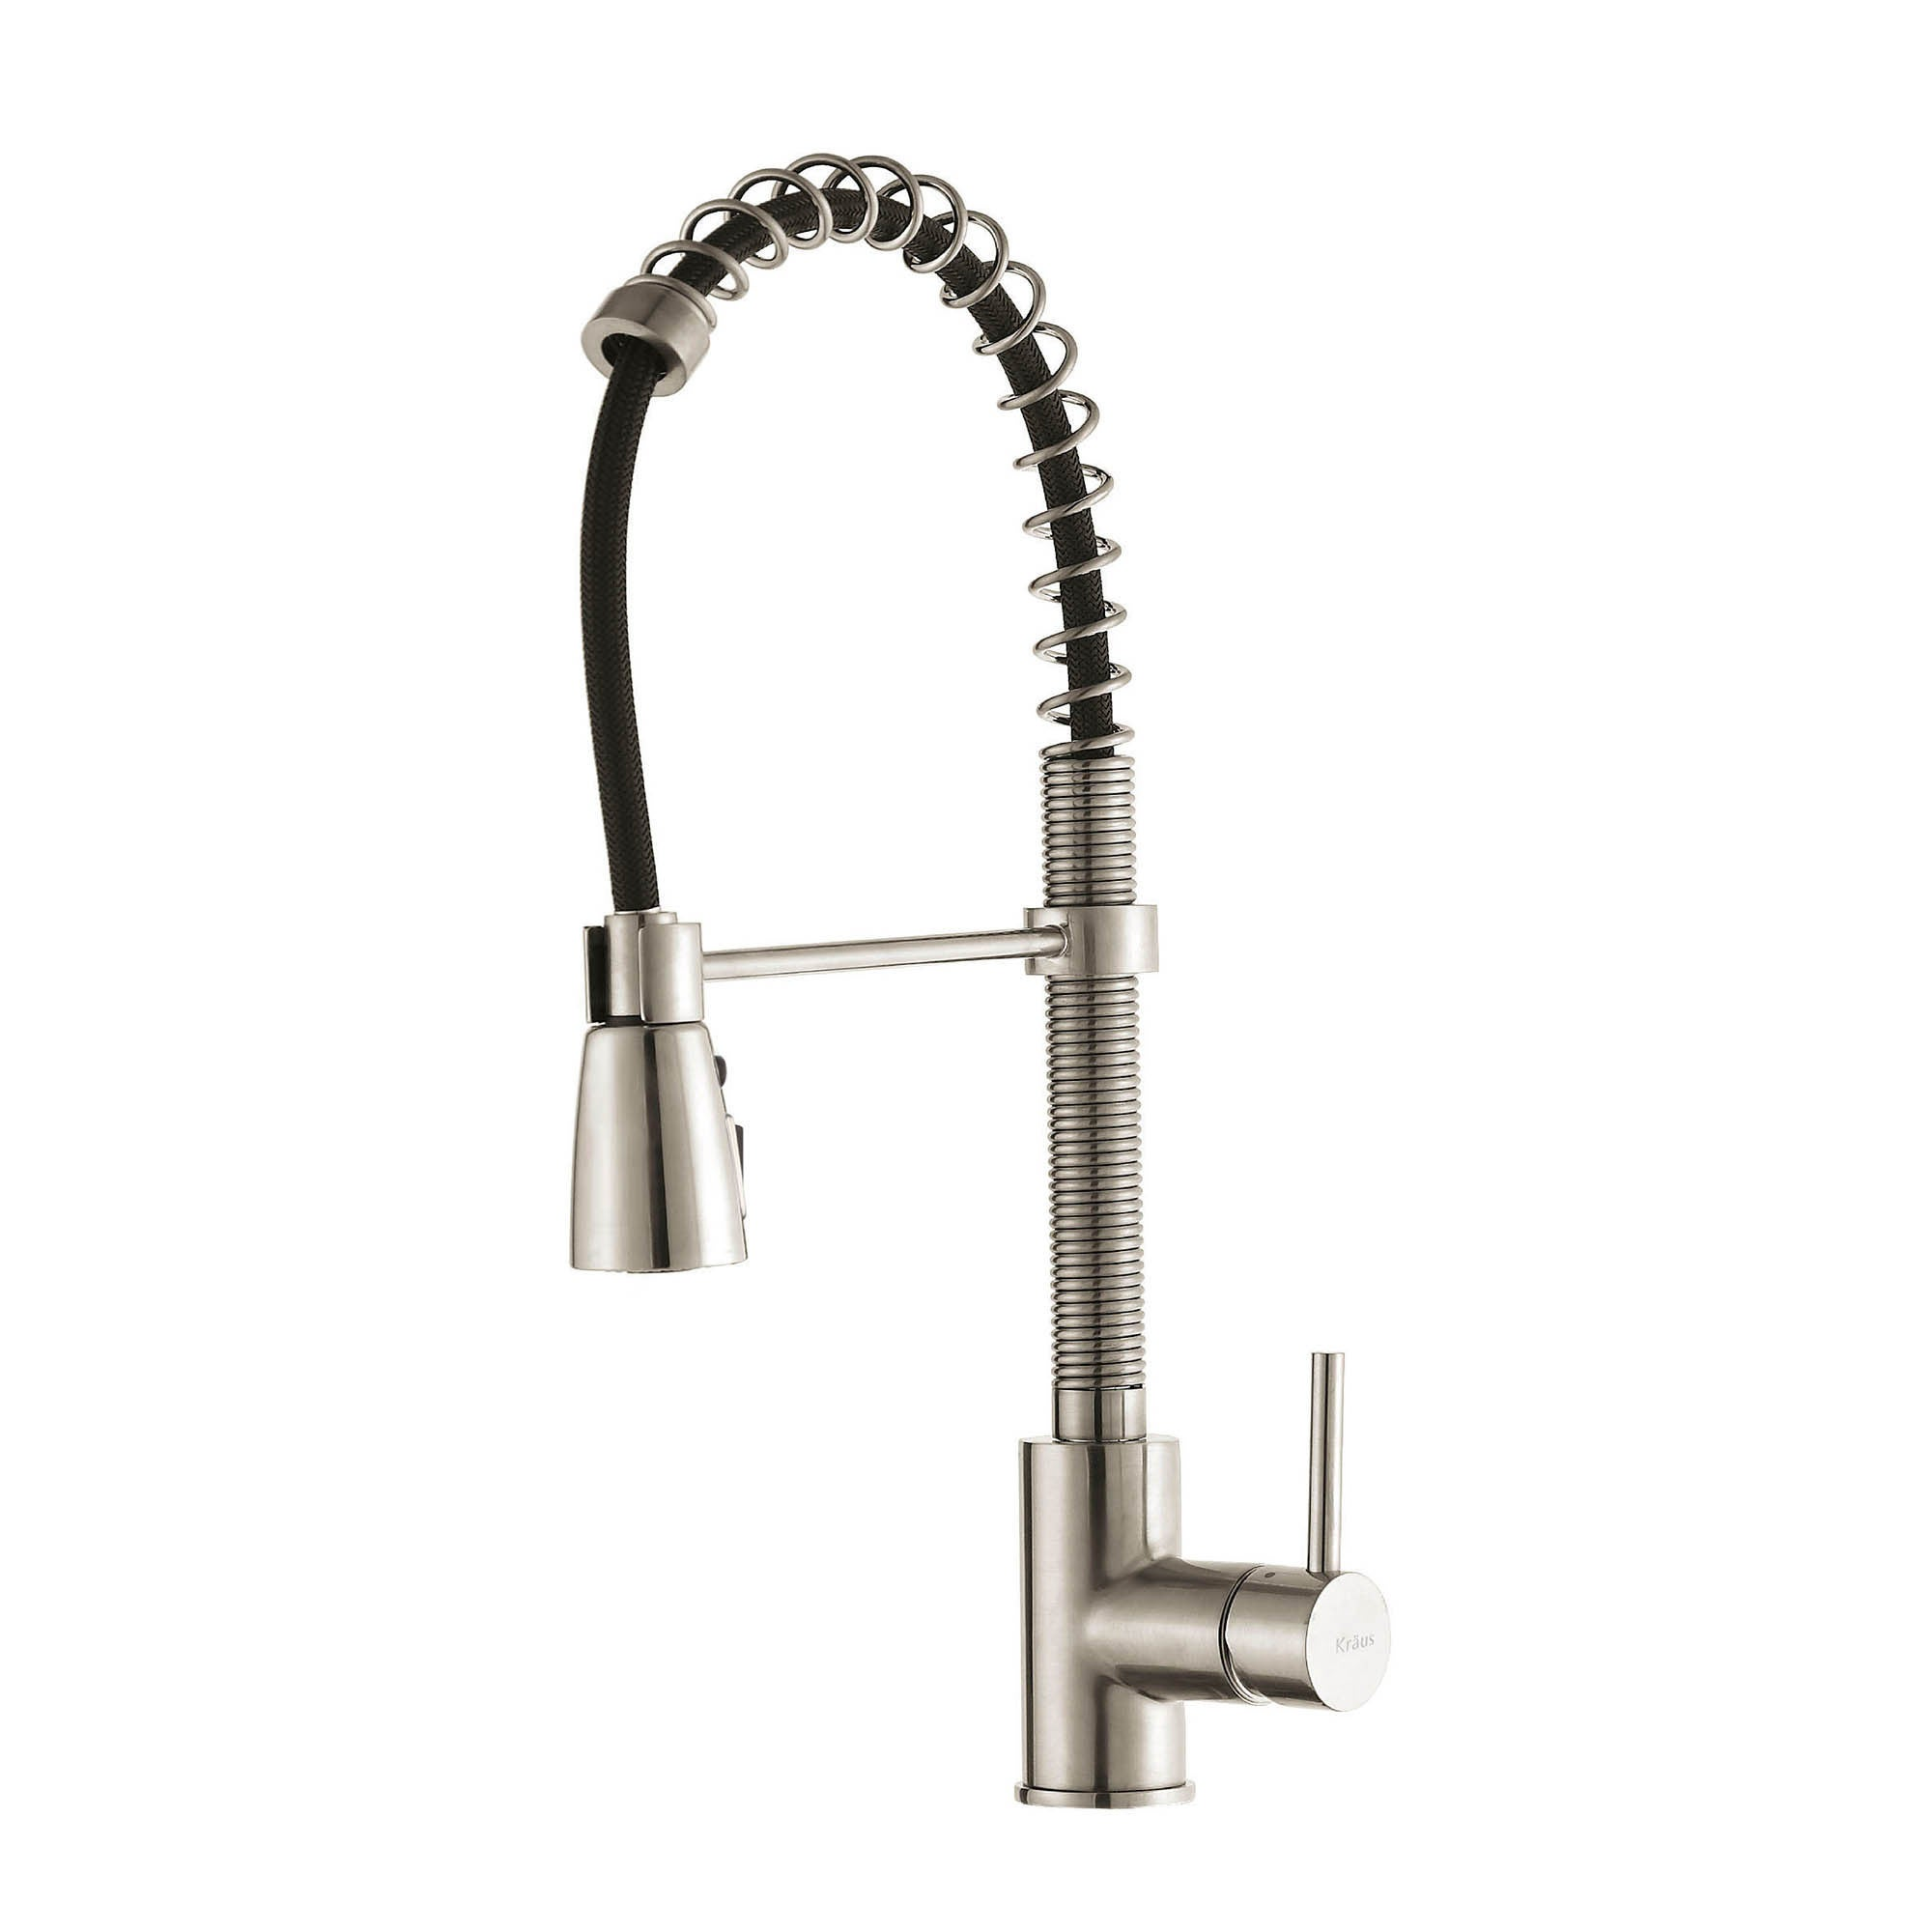 level customer rated handle high umxl kitchen helpful com nickel best faucet pull single pcr down in arch brushed reviews commercial amazon sprayer with faucets